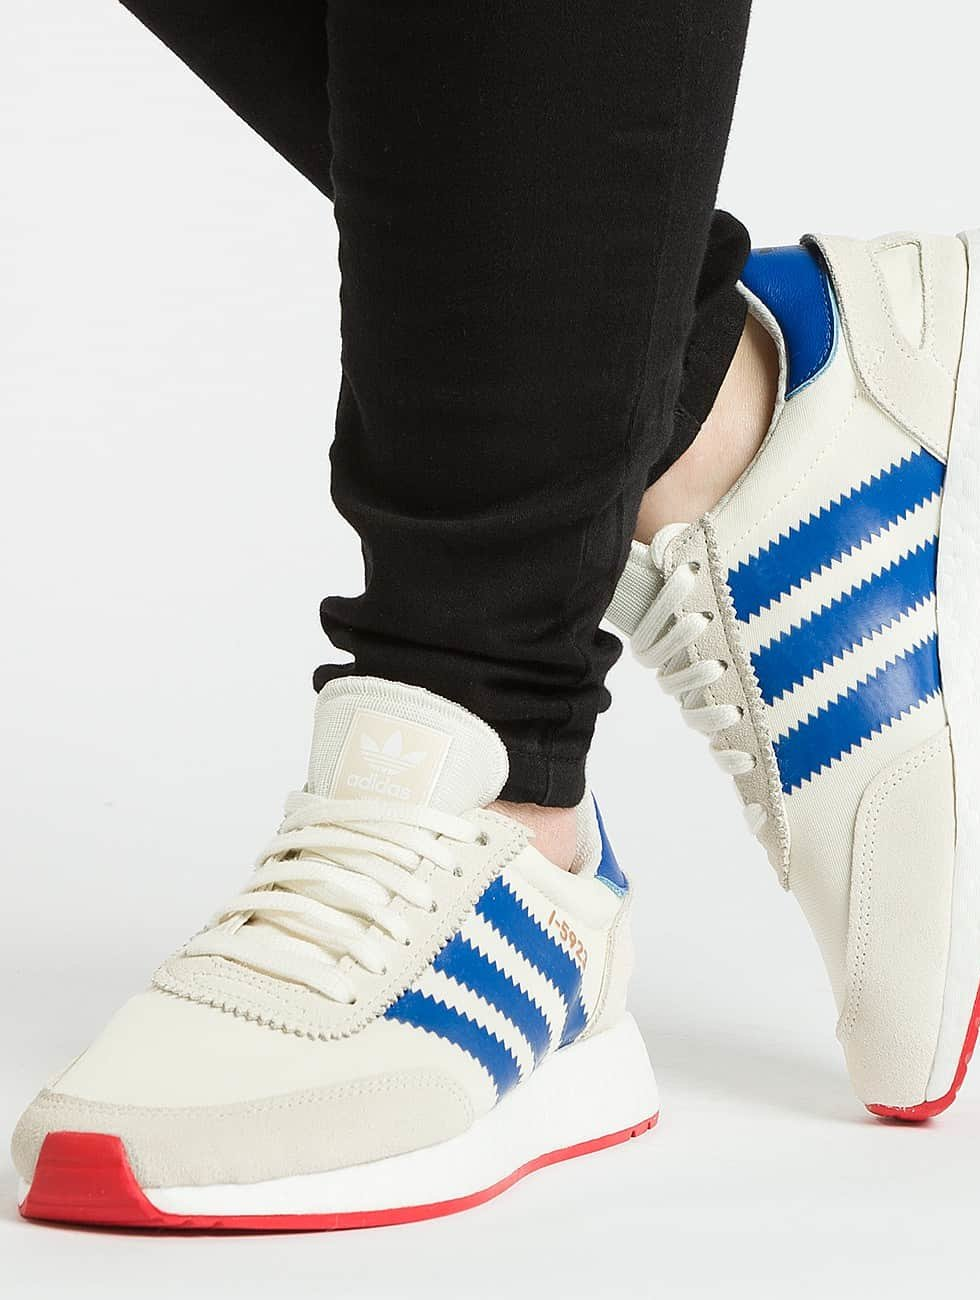 adidas originals schoen / sneaker I-5923 in wit 396212 Outlet 2018 Nieuwe 4UiJp0458O